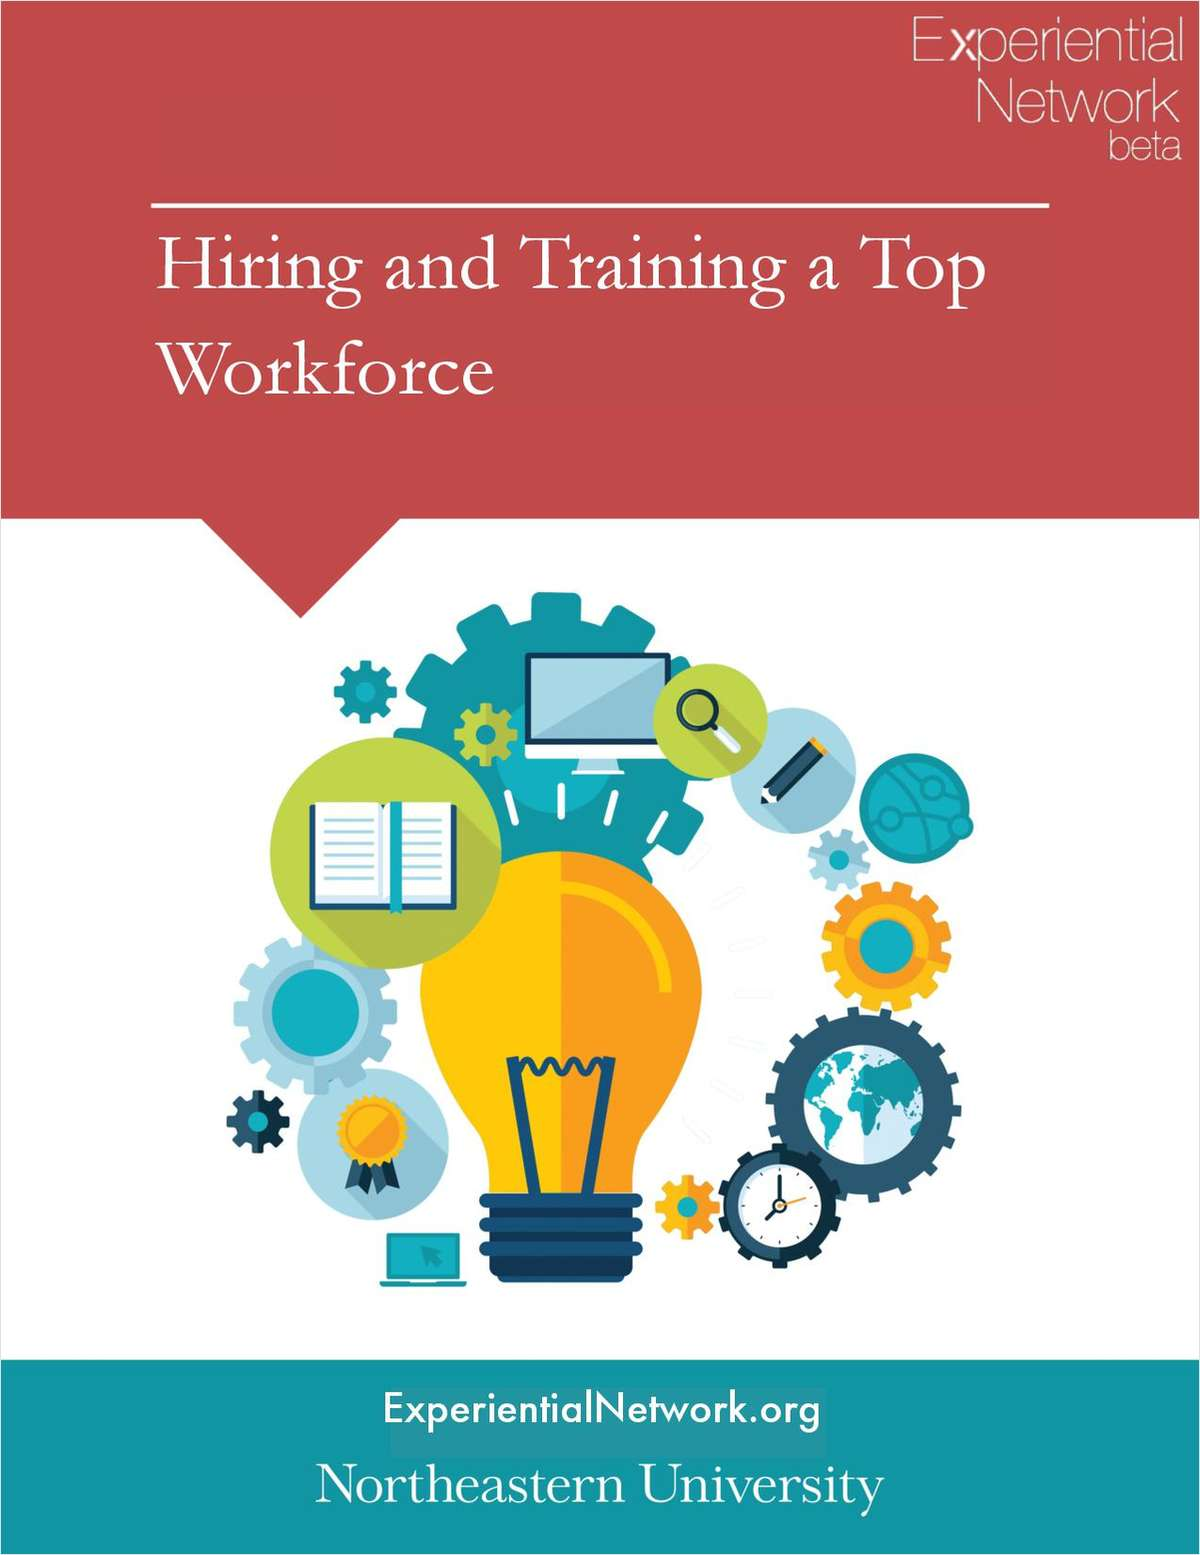 How to Hire, Train, and Develop a Top Talent Workforce